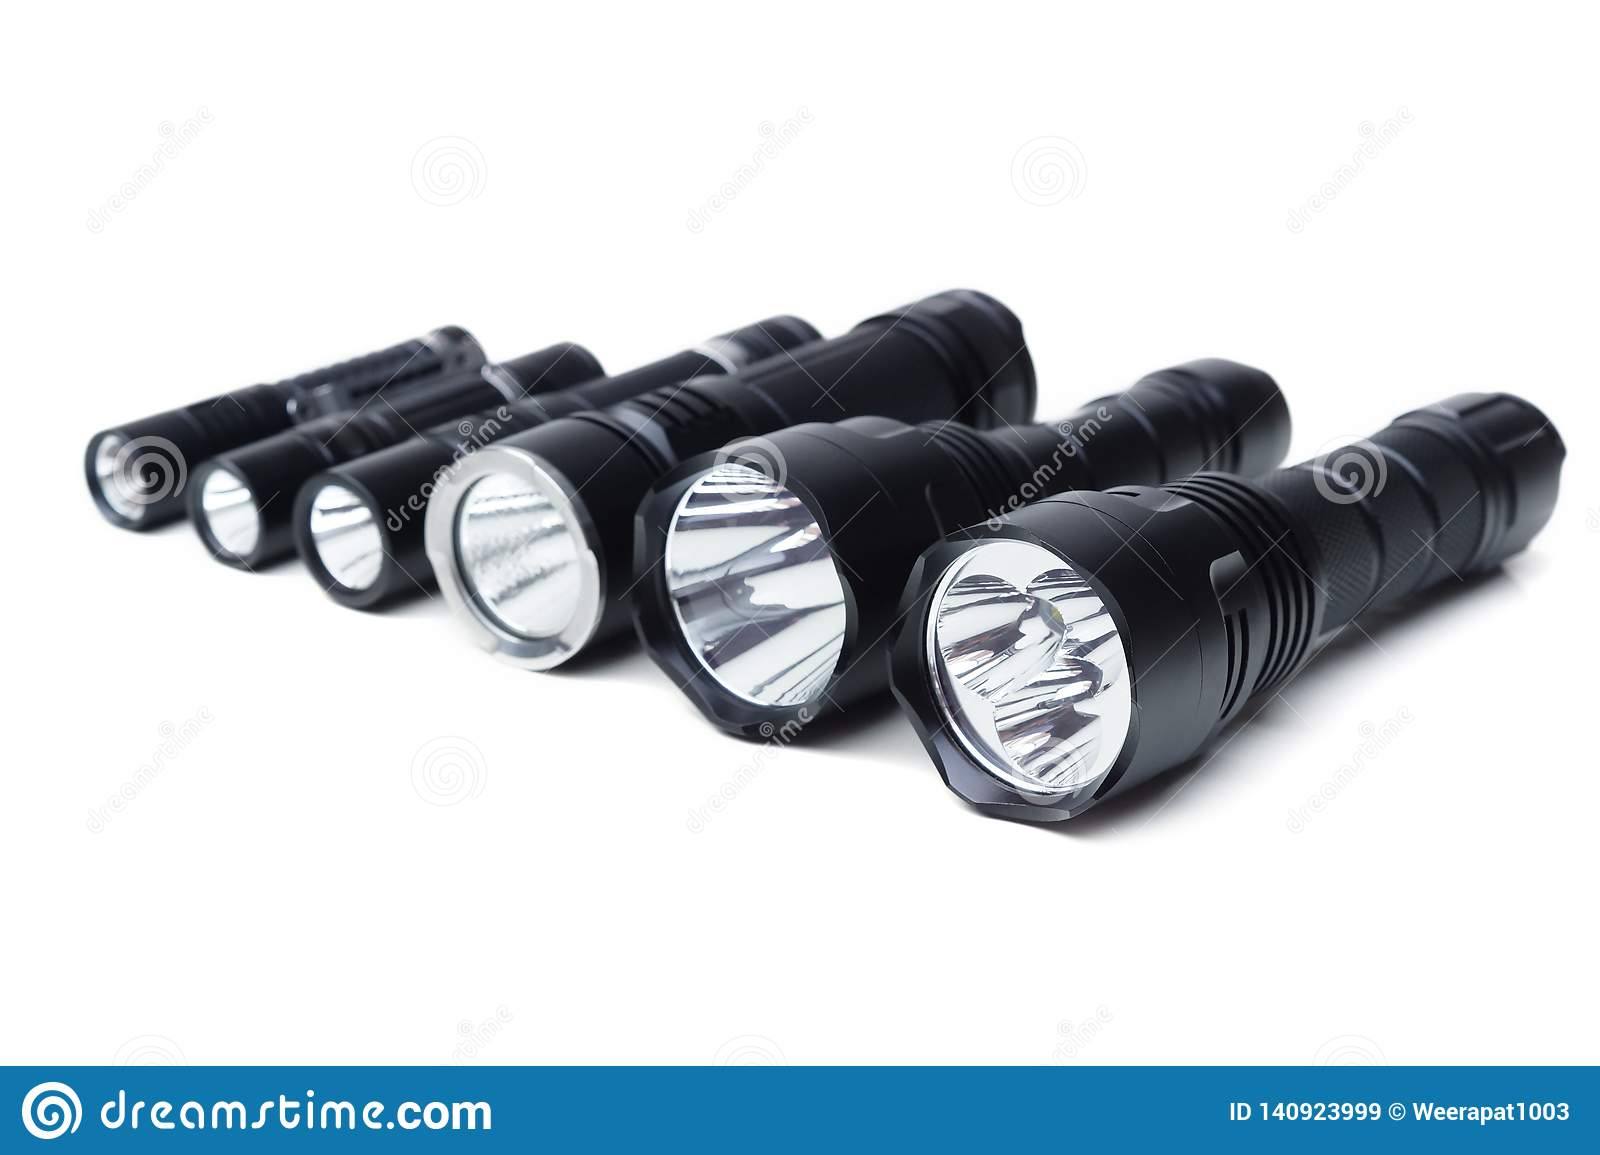 Flashlights for camping in different sizes